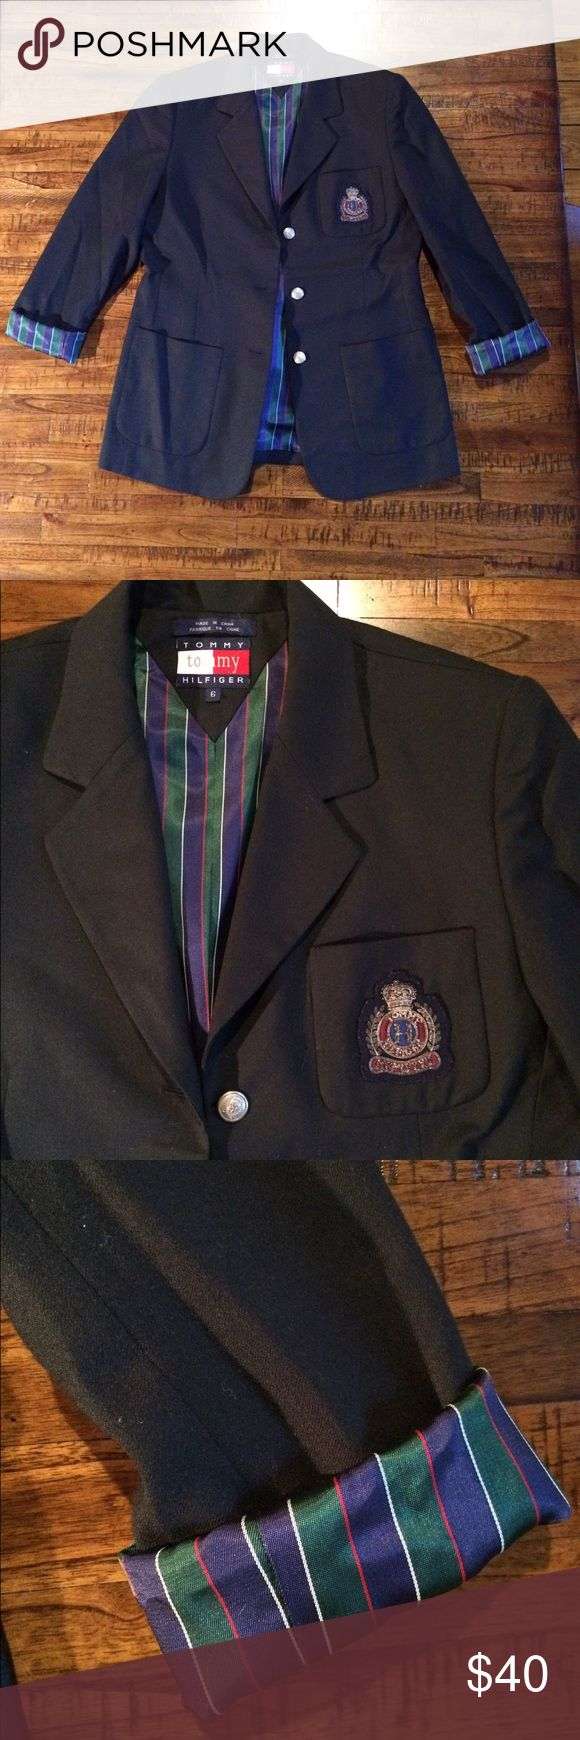 Gossip Girl Prep Blazer You don't see a lot of blazers like this! Looks like it came straight out of the show Gossip Girl! Excellent condition navy blue blazer with satin striped lining (which you can show off when you roll the sleeves) and metal buttons down the front. Has a collegiate patch to round out the prep look. Measures 16 in across shoulders, 18.5 in across bust, 28 in length from back of collar, and 24 in sleeve length. Size 6 Tommy Hilfiger Jackets & Coats Blazers